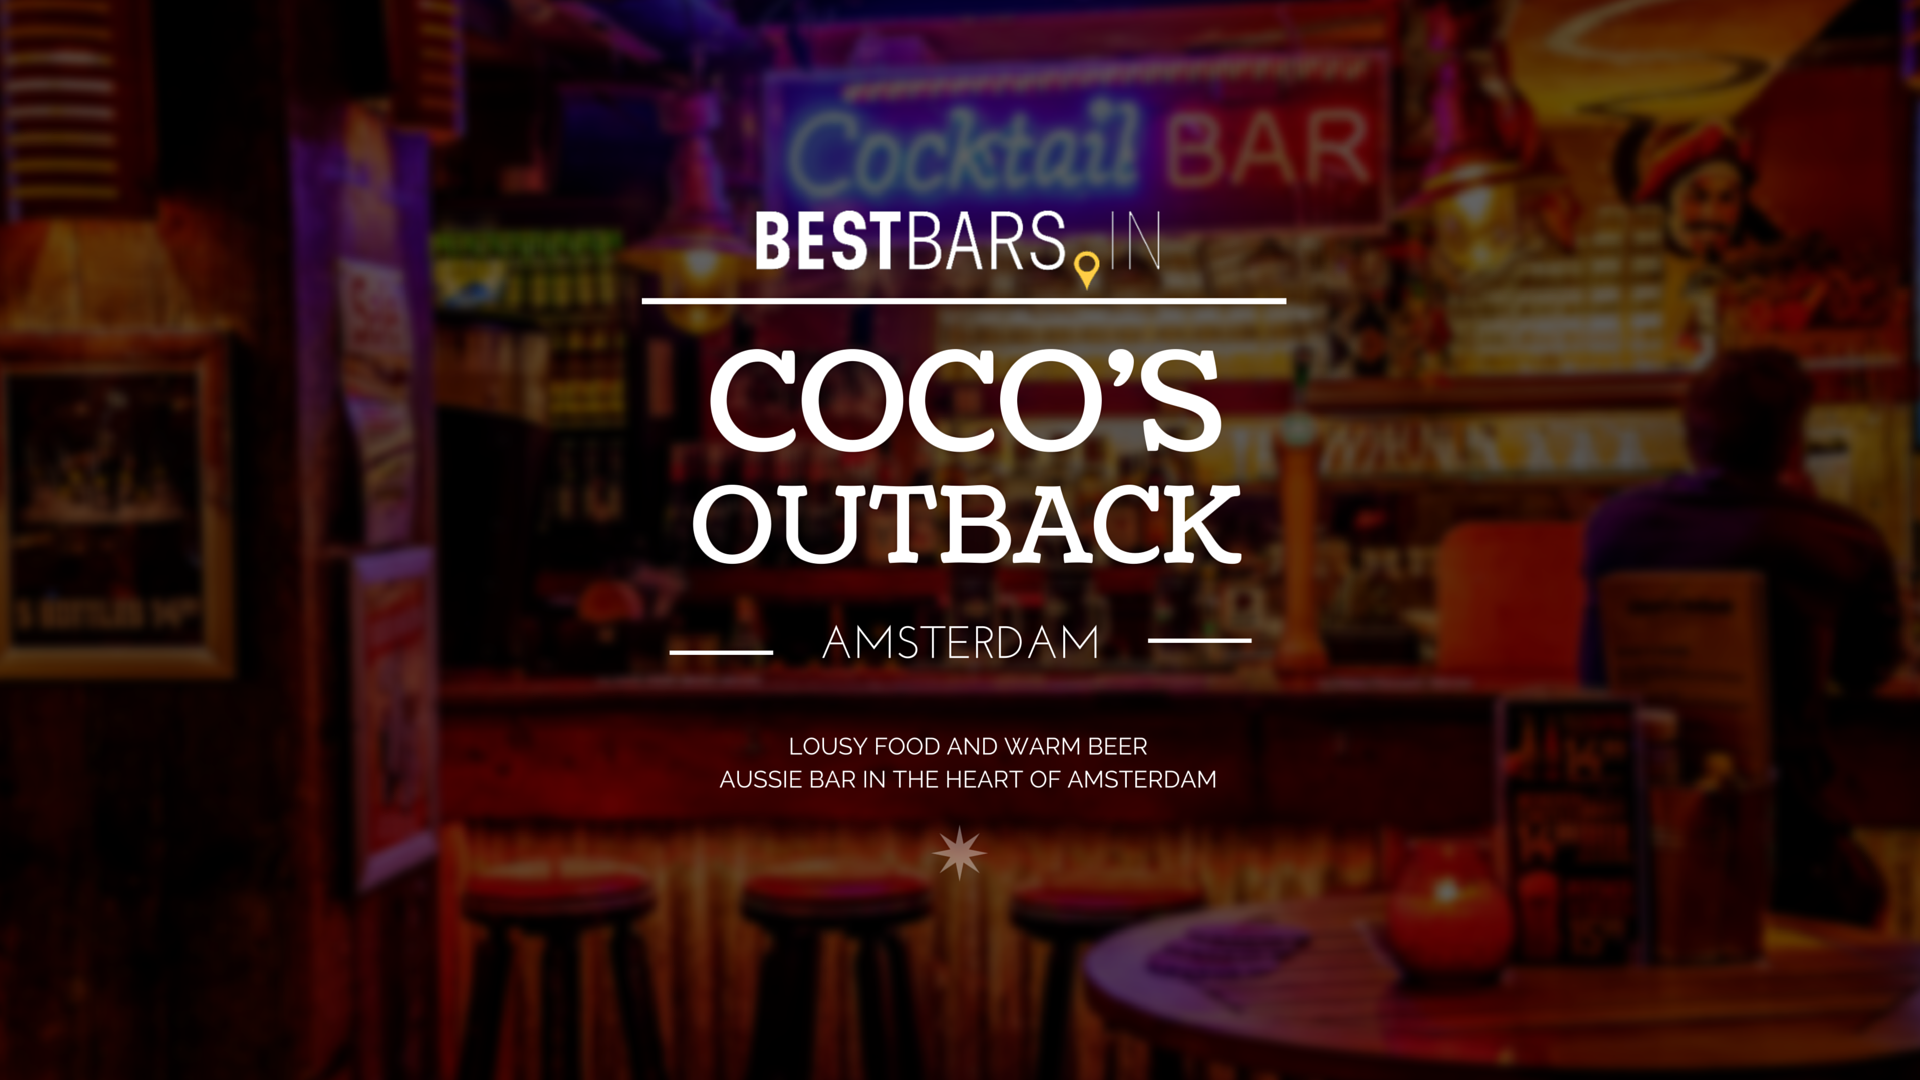 Coco's Outback - Australian bar in the heart of Amsterdam